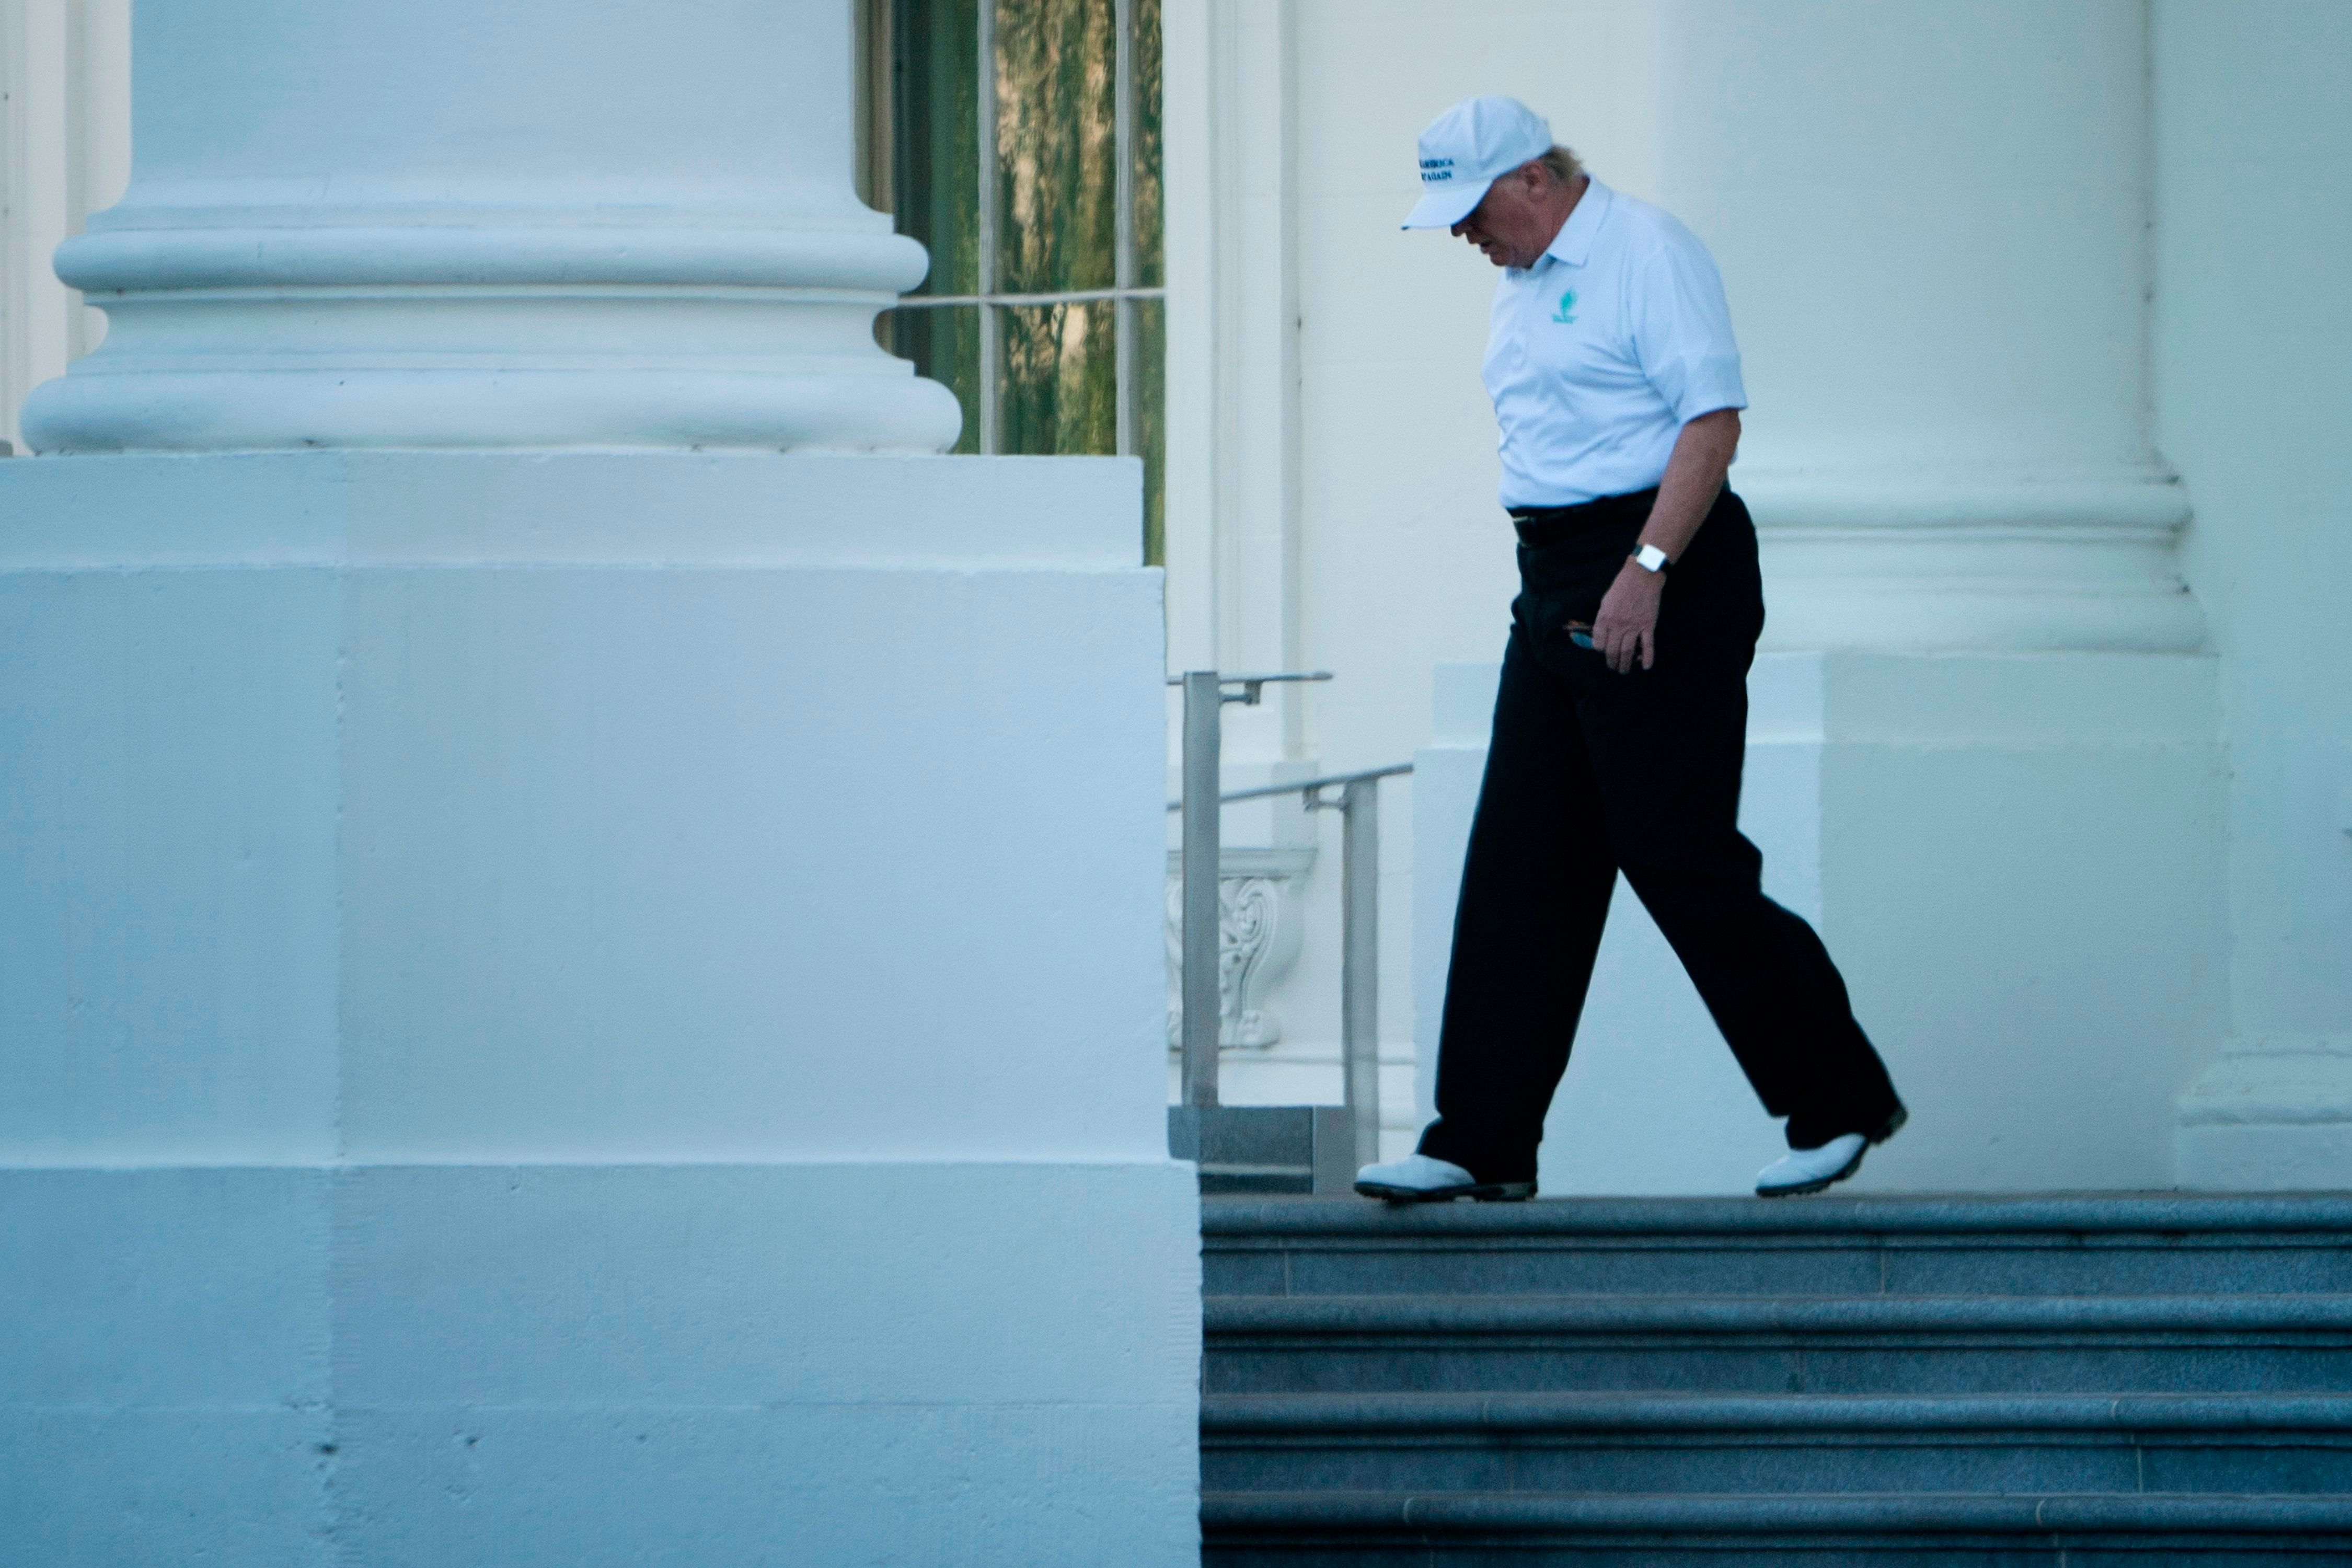 US President Donald Trump walks from the White House to his motorcade before traveling to his Virginia golf club on October 21, 2017 in Washington, DC. / AFP PHOTO / Brendan Smialowski        (Photo credit should read BRENDAN SMIALOWSKI/AFP/Getty Images)